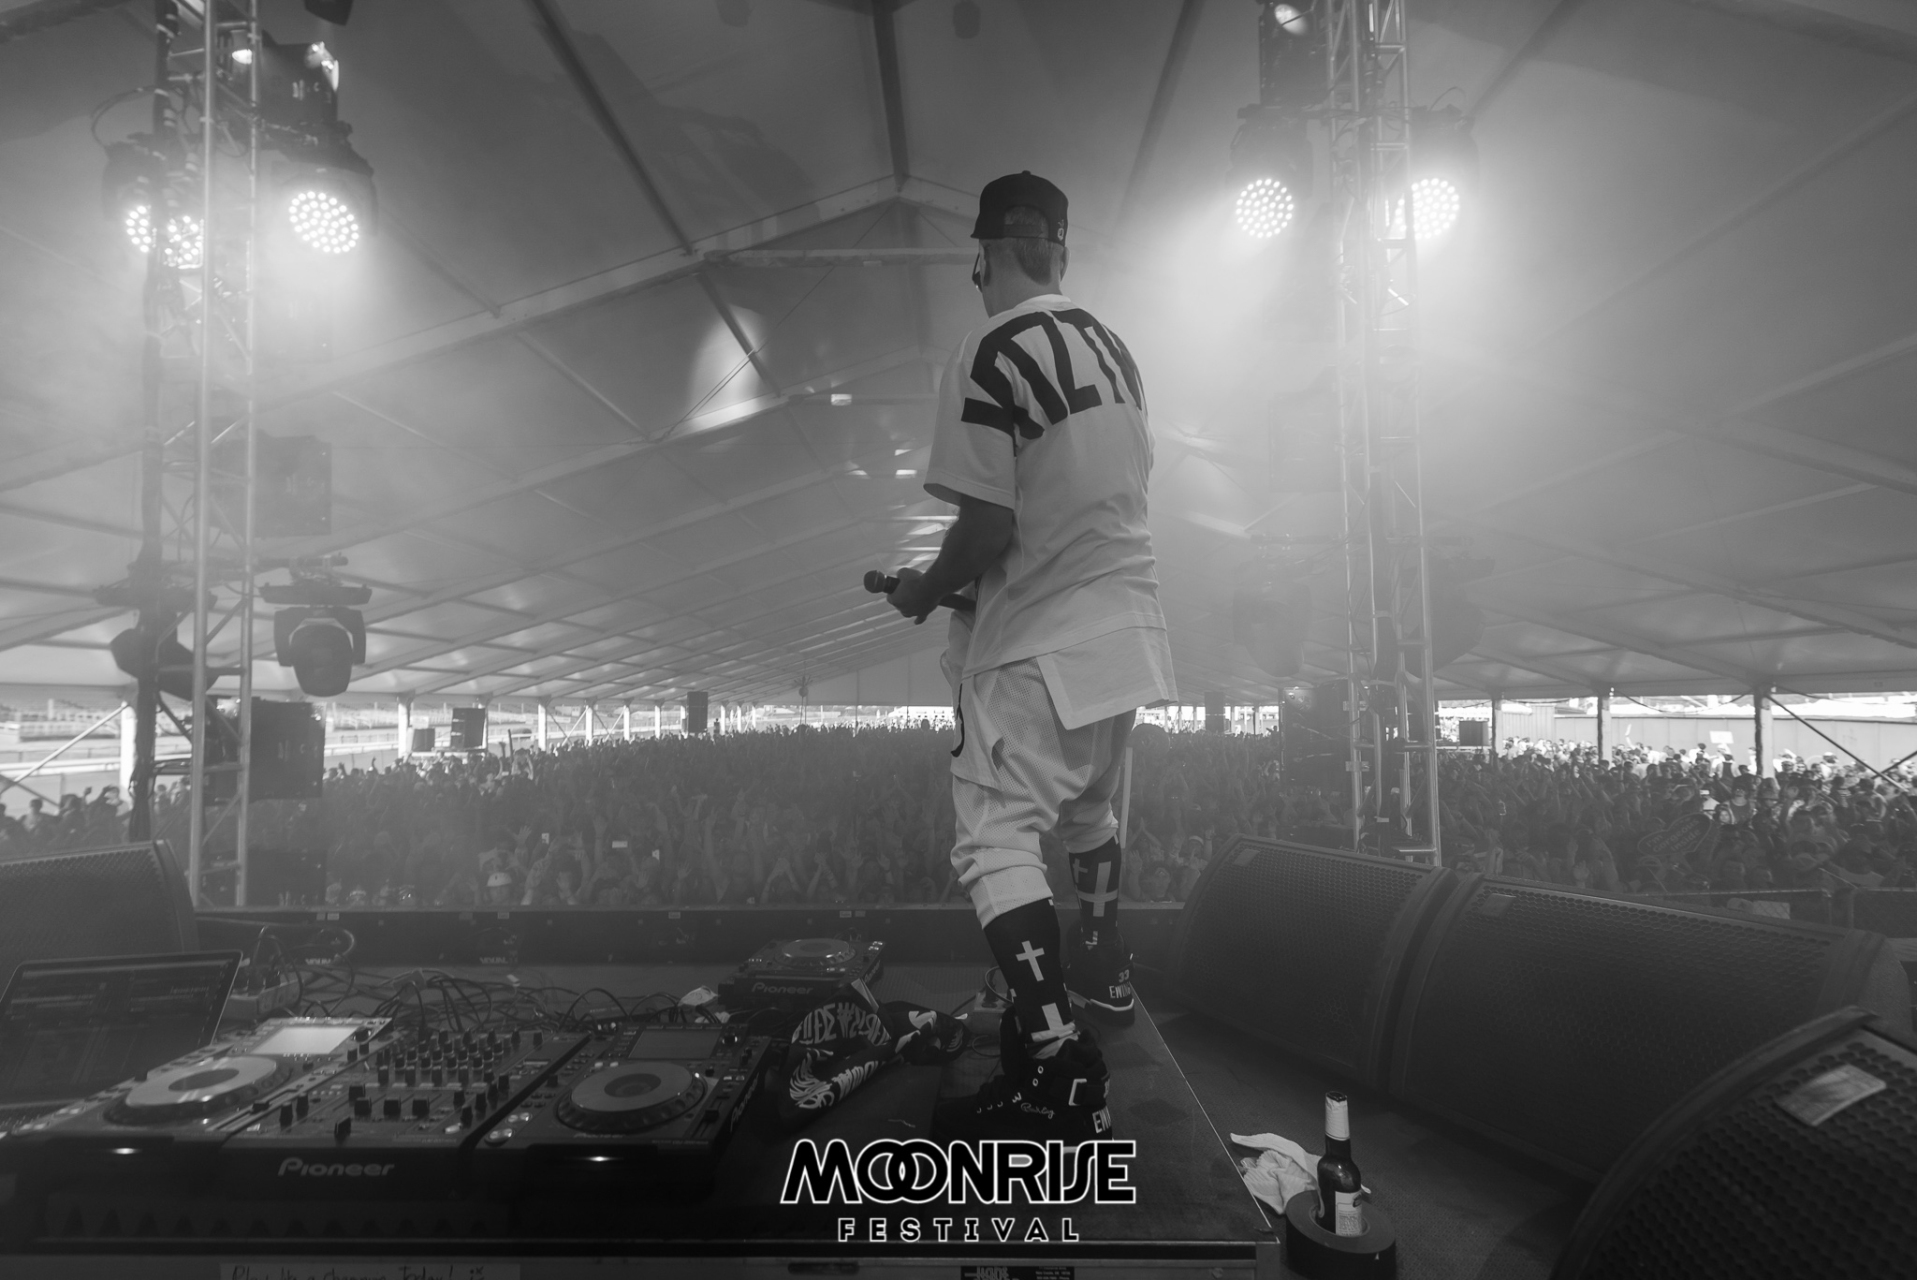 Moonrise_day2-57